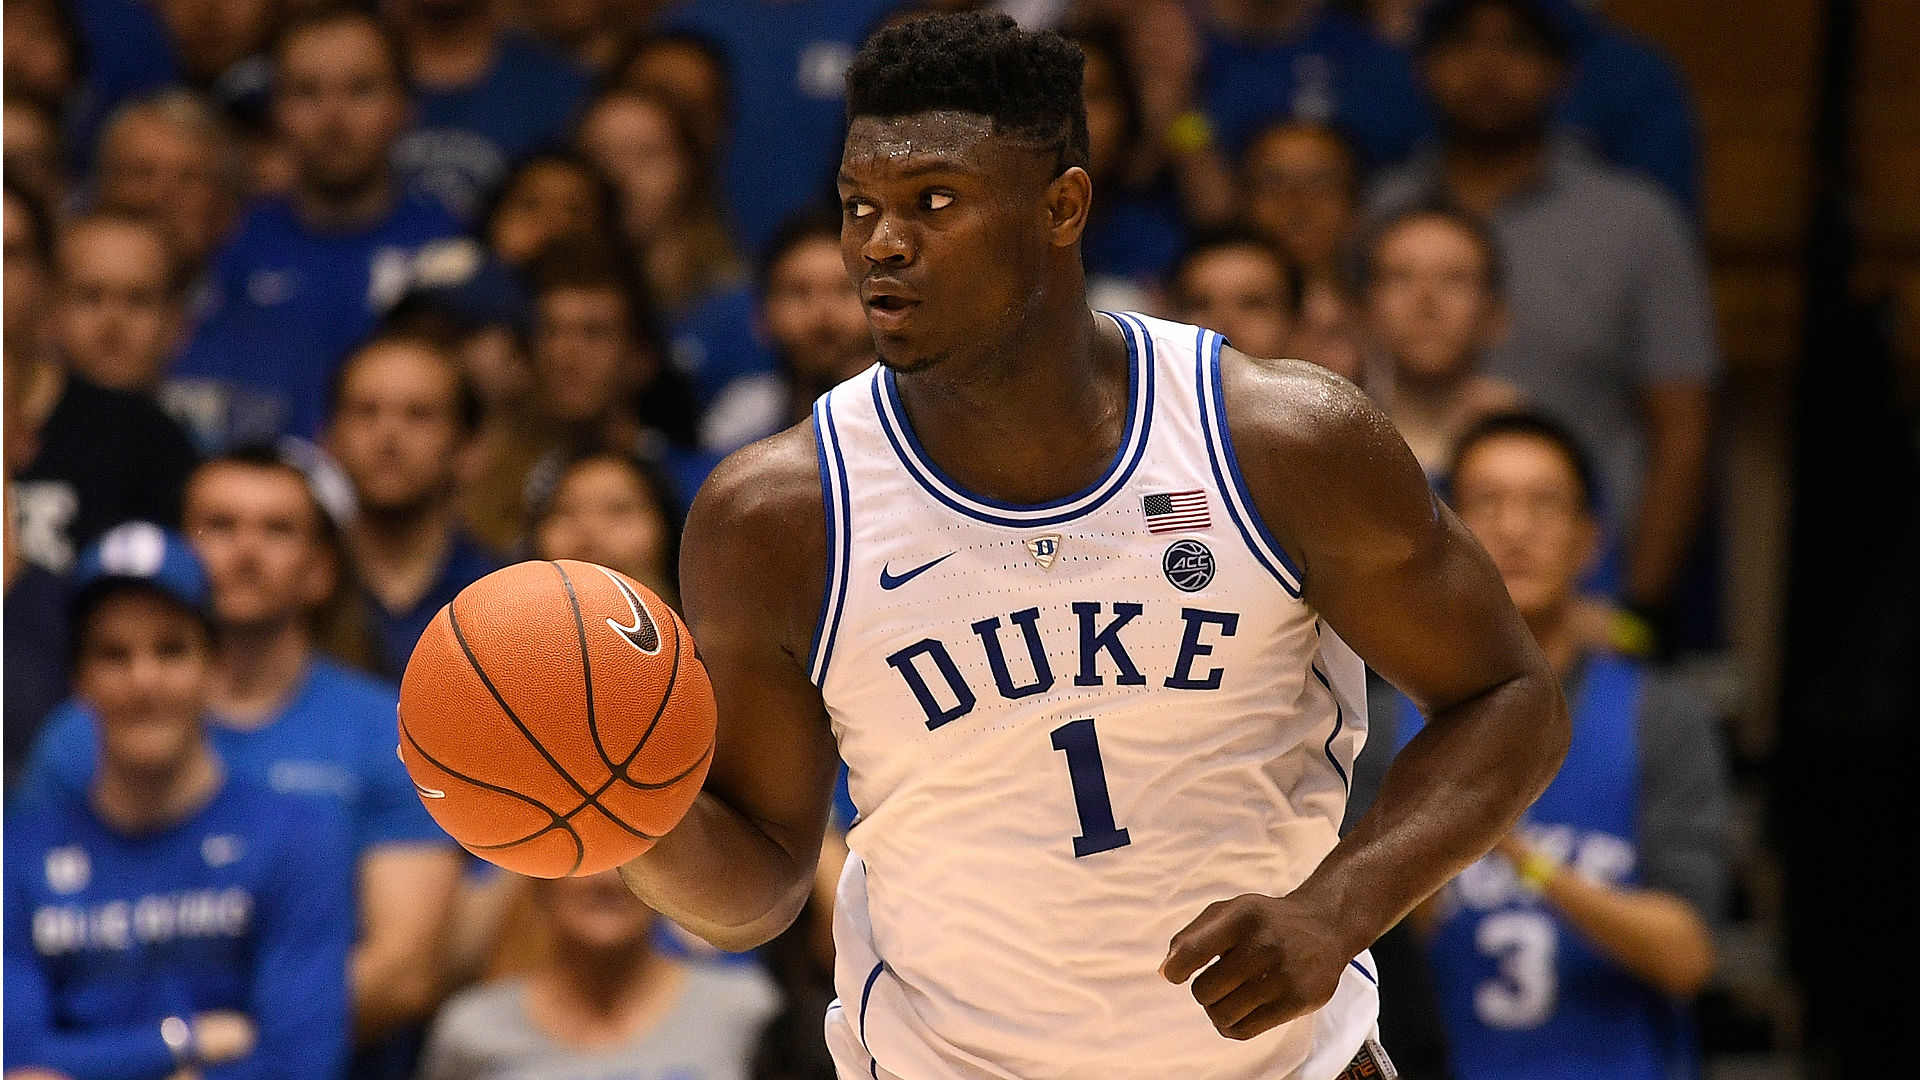 Duke star Zion Williamson injures knee after Nike shoe blows out